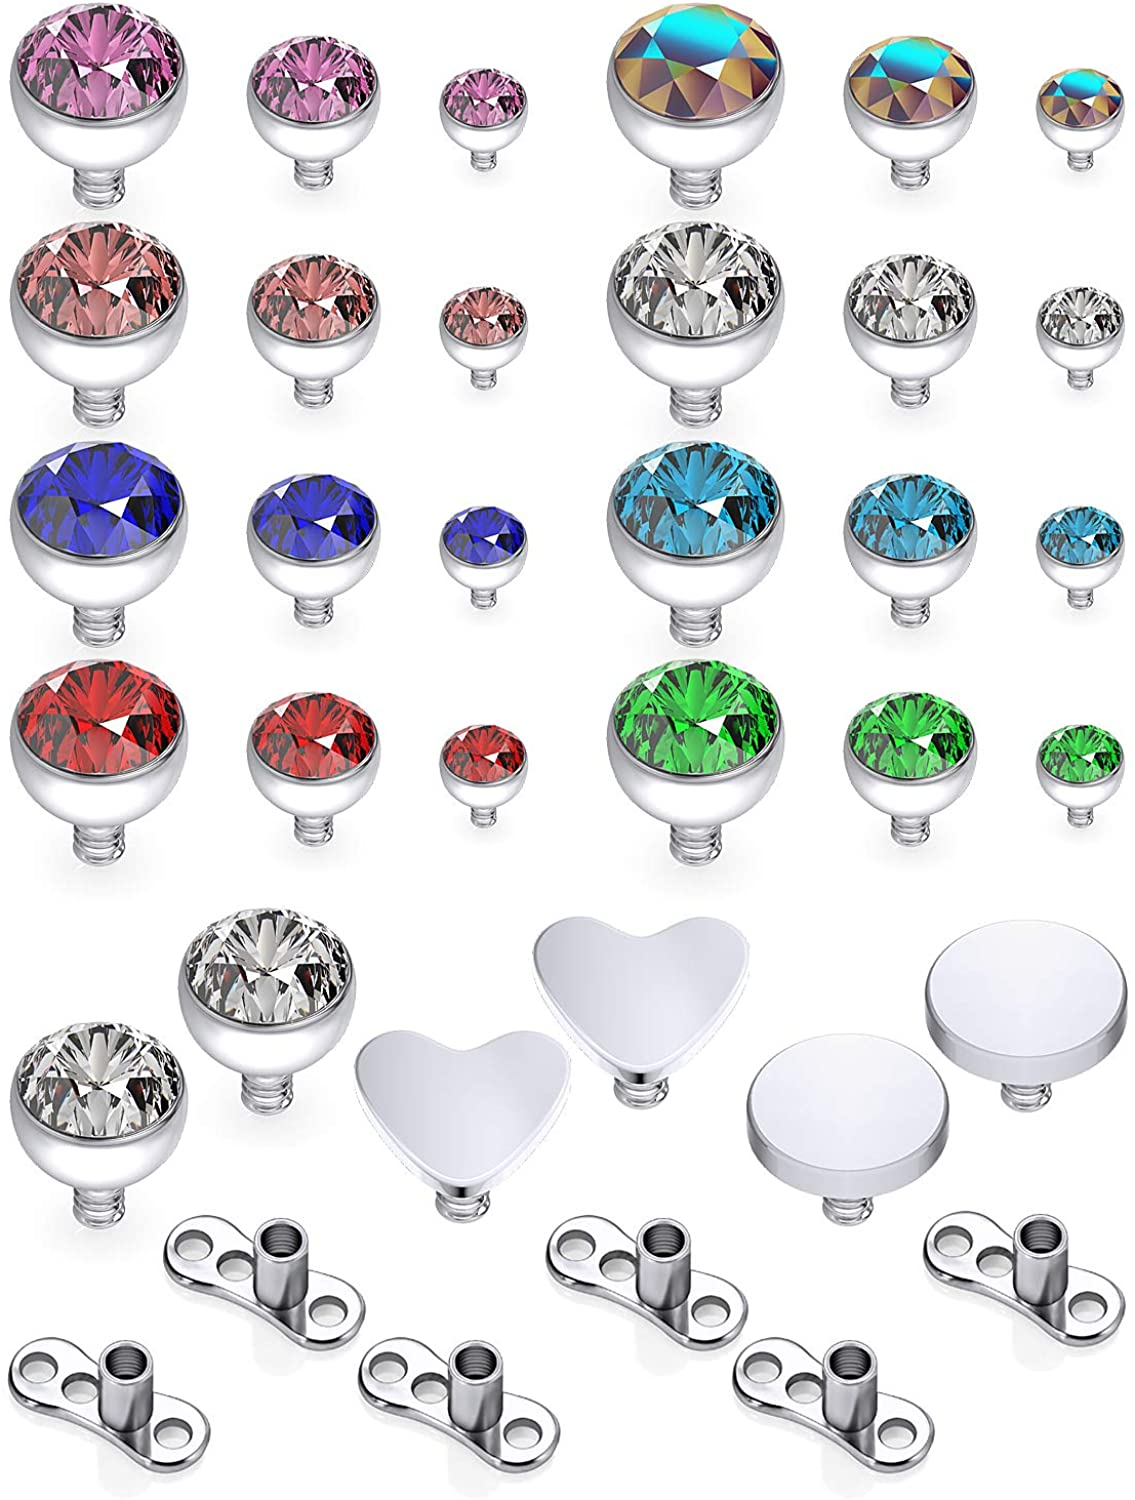 Prjndjw 14G Clear CZ Dermal Anchor Tops and Base Titanium Microdermals Piercing Body Piercing Jewelry for Women Men 2mm 3mm 4mm 36Pcs 19Pcs Dermal Anchor Piercing Jewelry